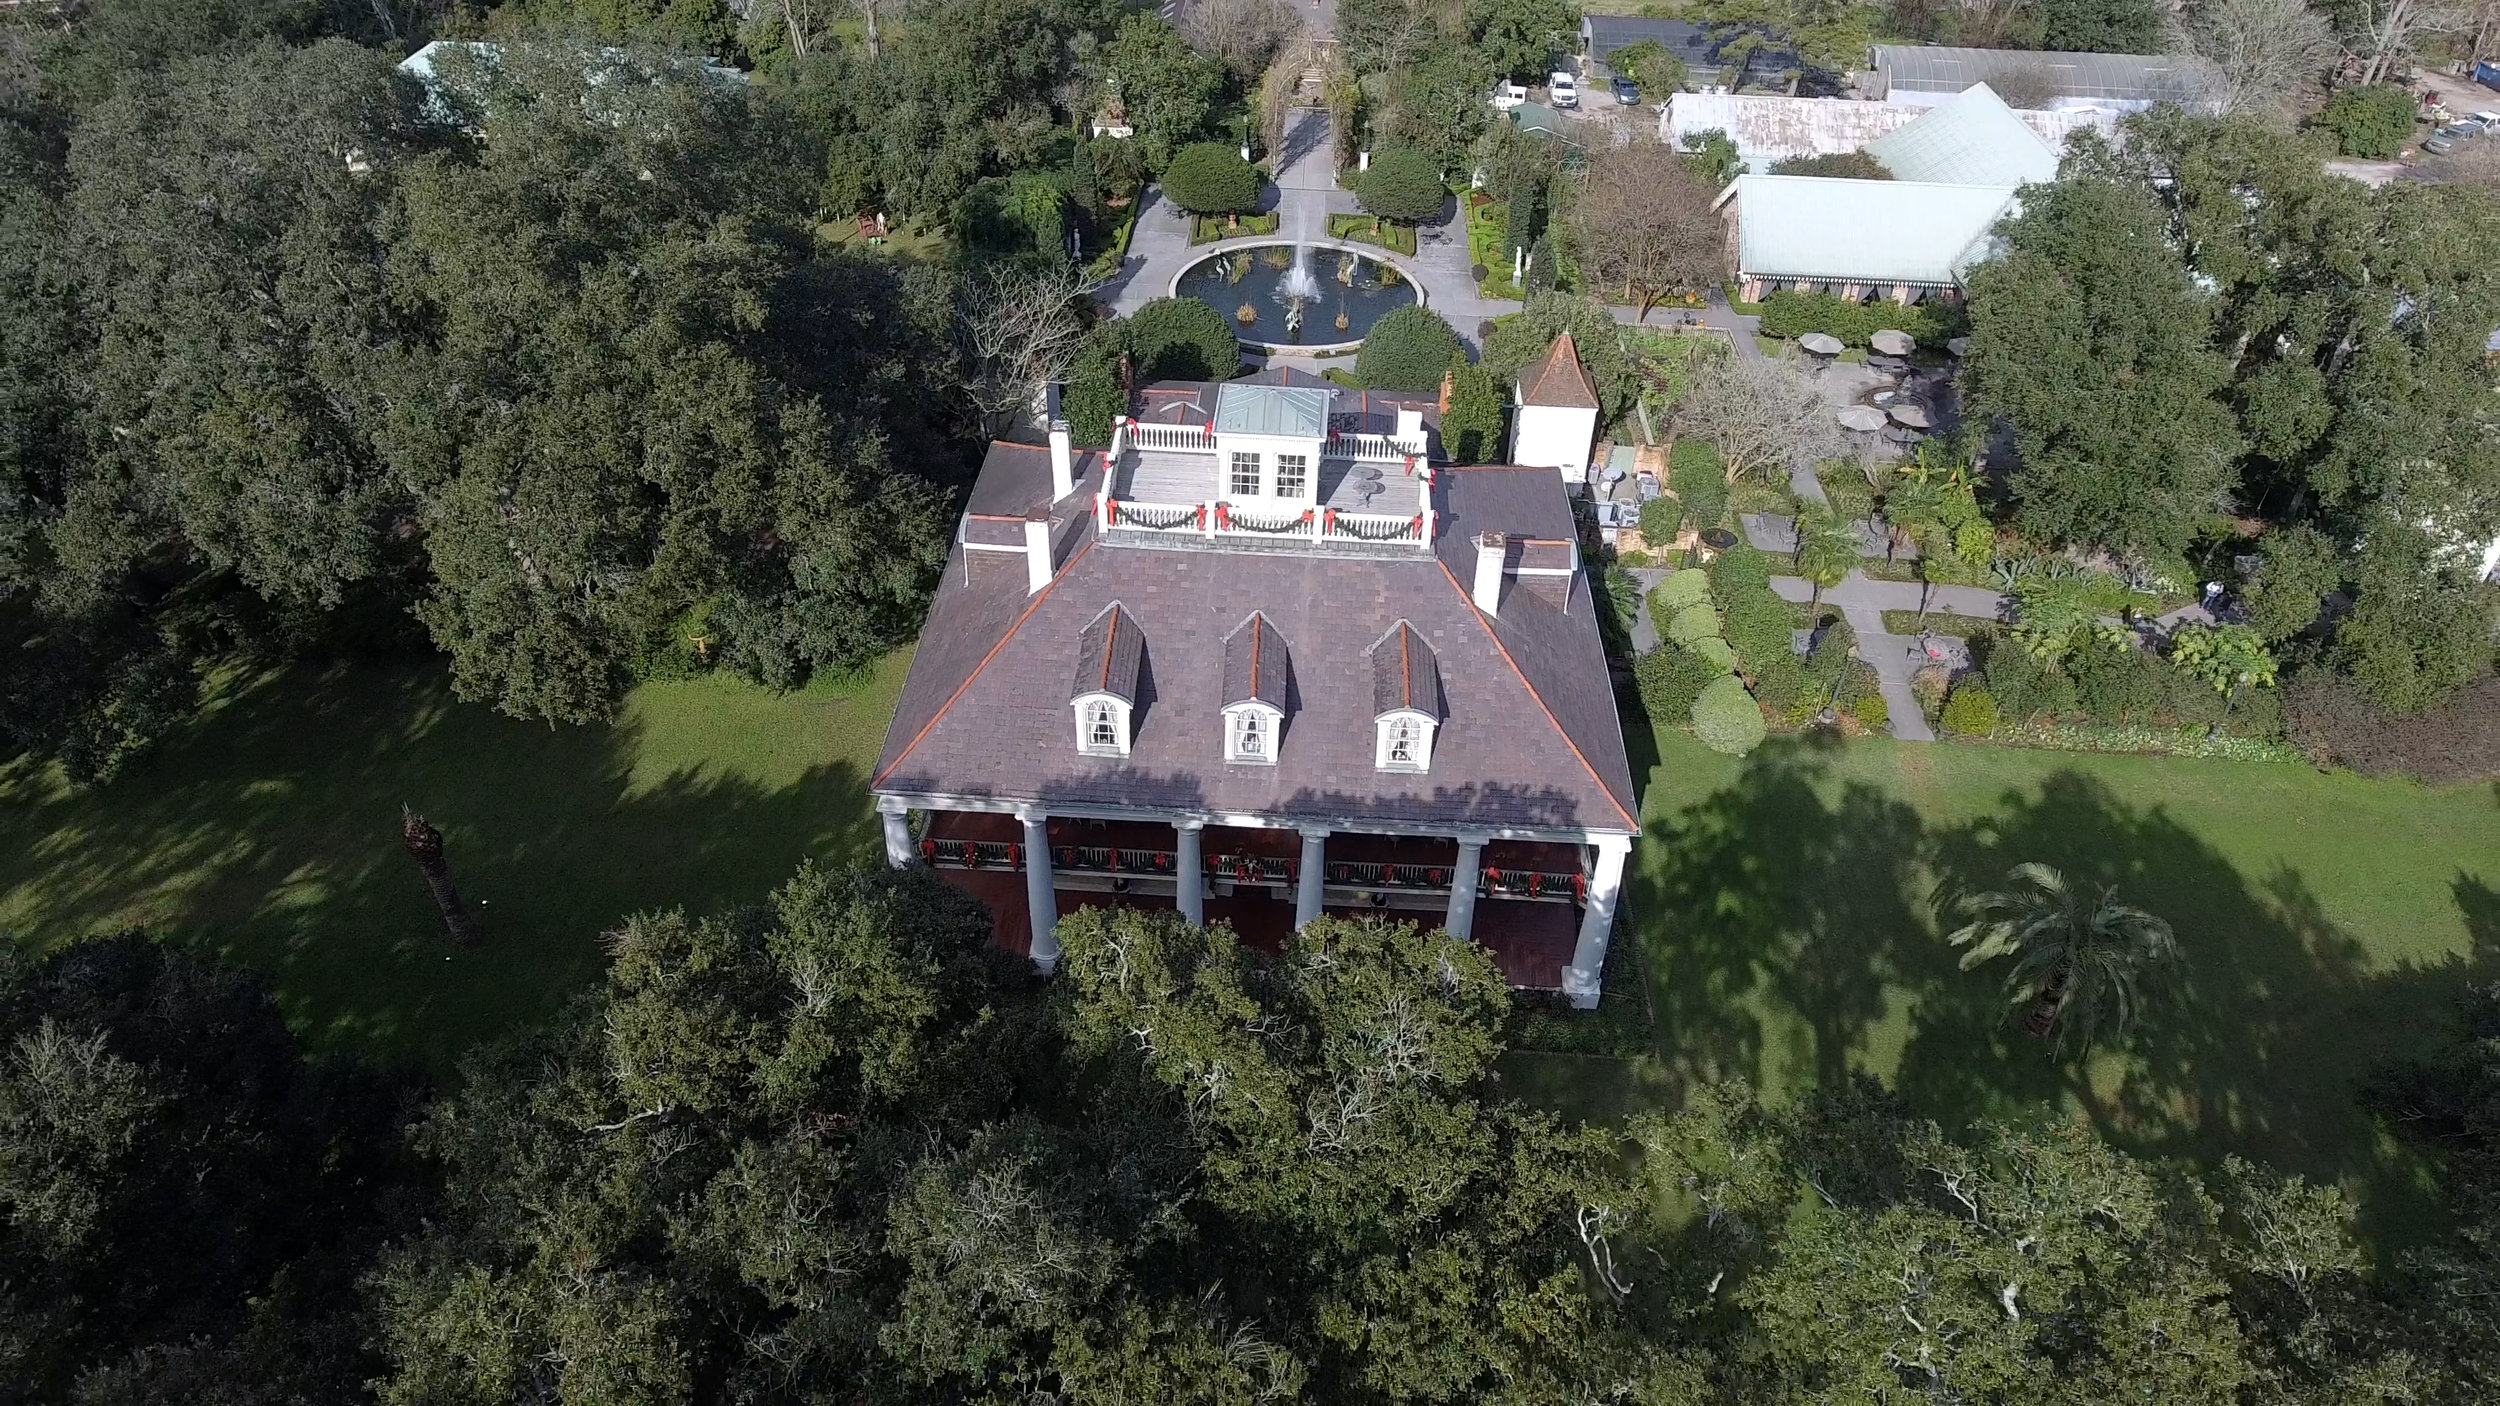 73Visuals_HoumasHouse_Aerial_Photography_Drone_BatonRouge_Louisiana.jpg